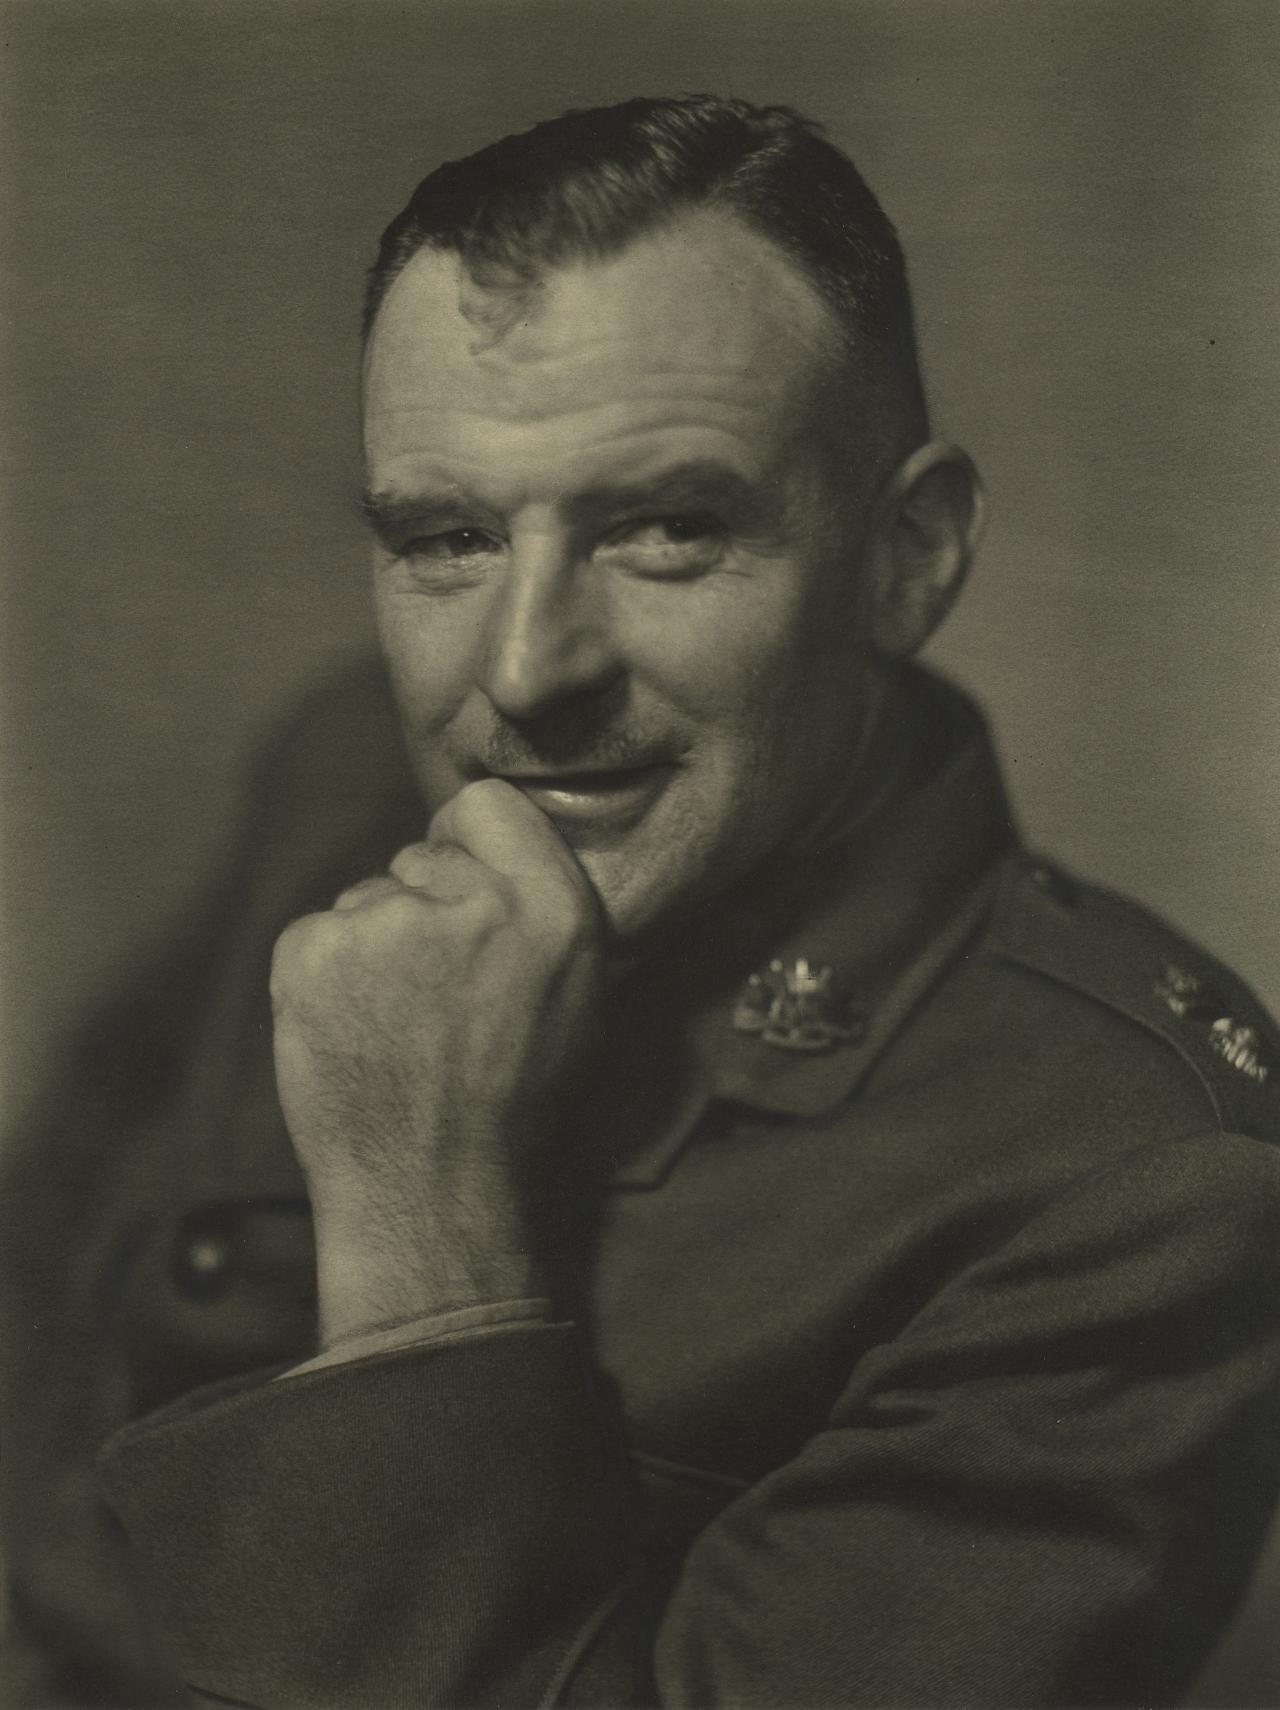 Brig. Harry Furnell